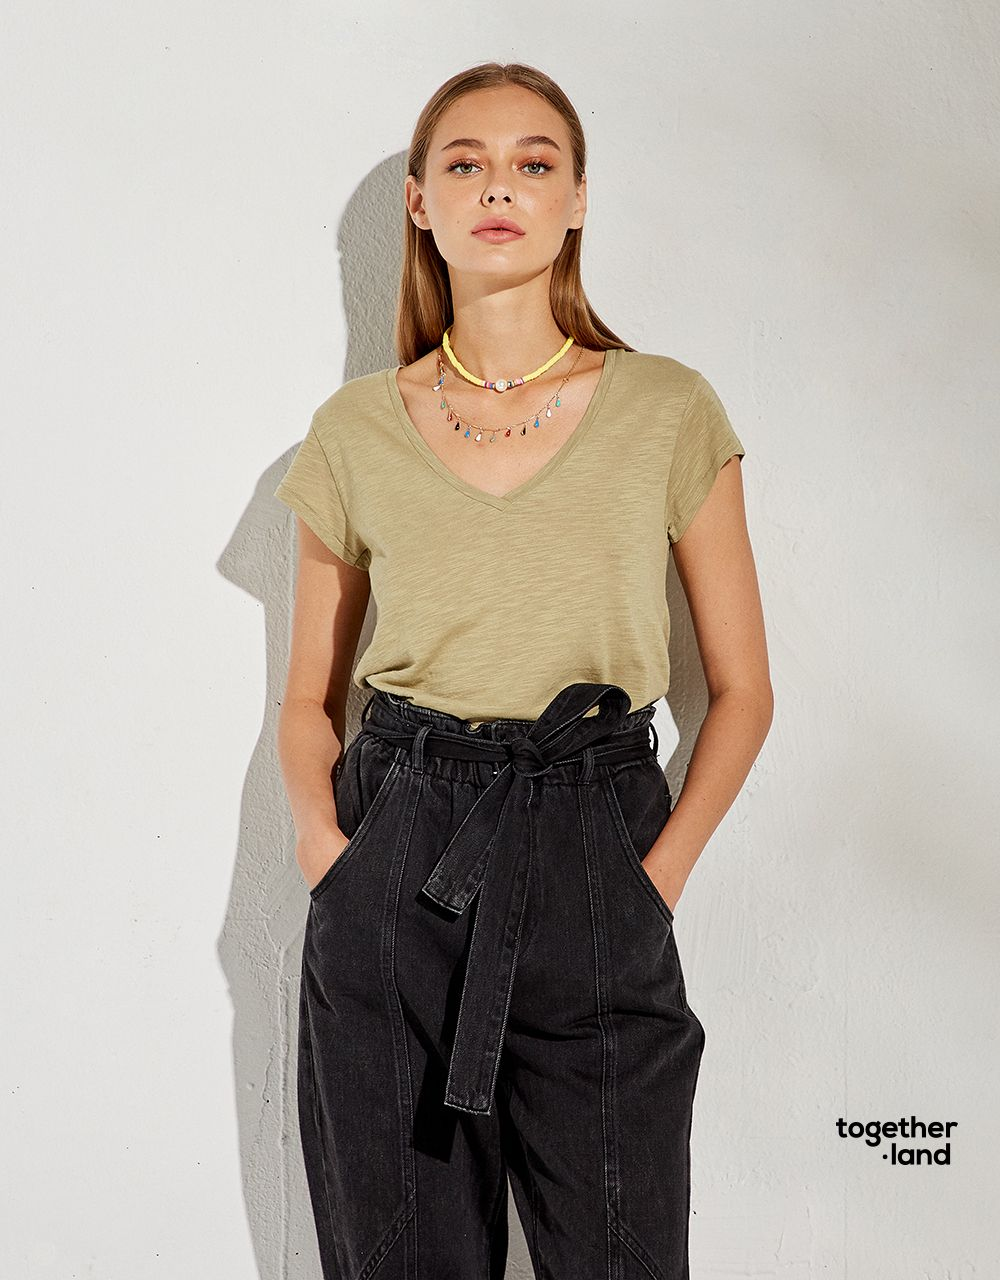 BASIC TOP WITH SHORT SLEEVES - TOGETHERLAND